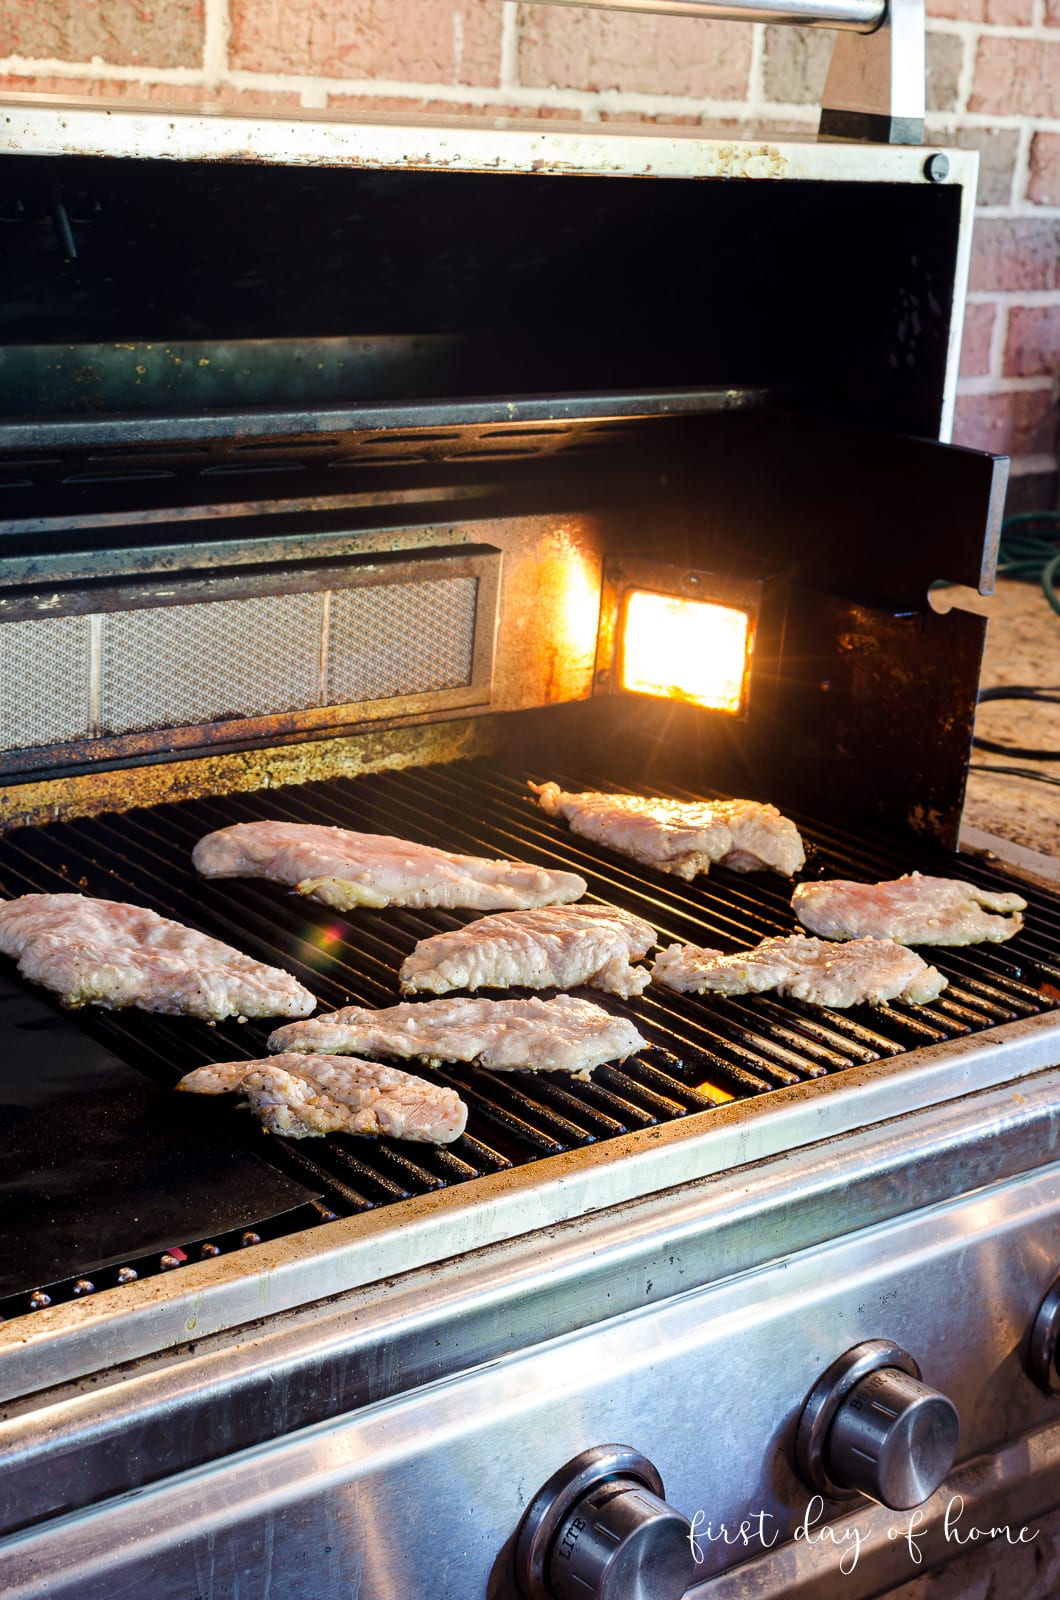 Chicken breasts cooking on a gas grill